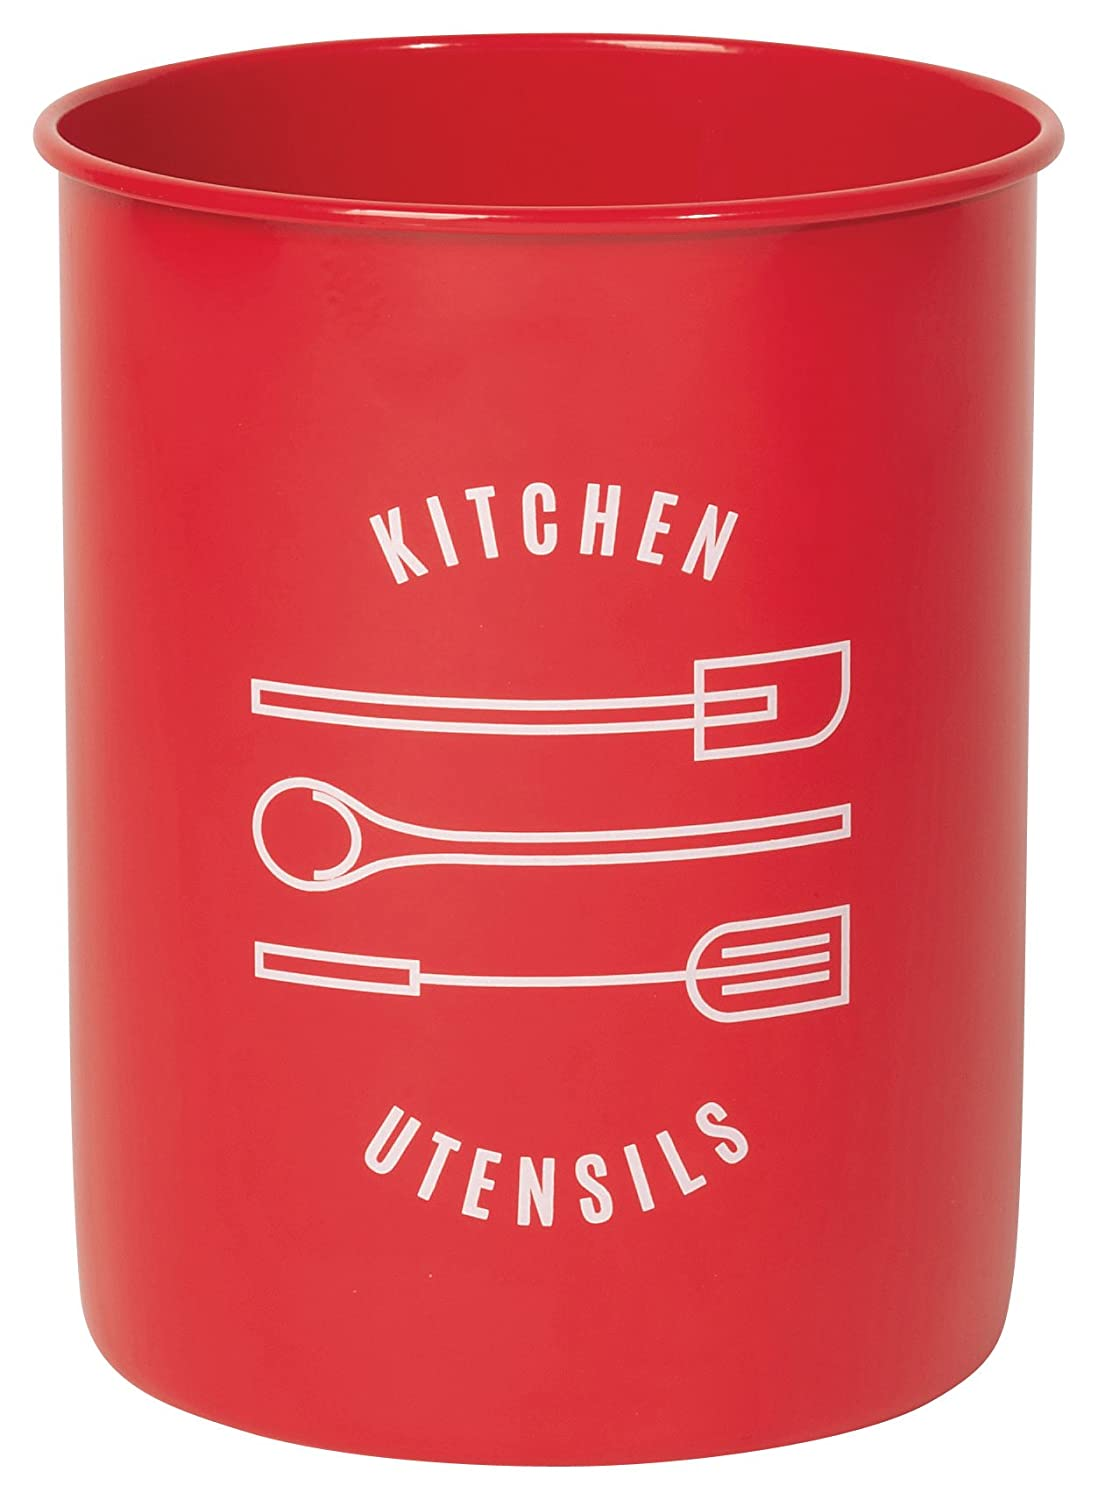 Now Designs Utensil Crock, Red 5060001aa